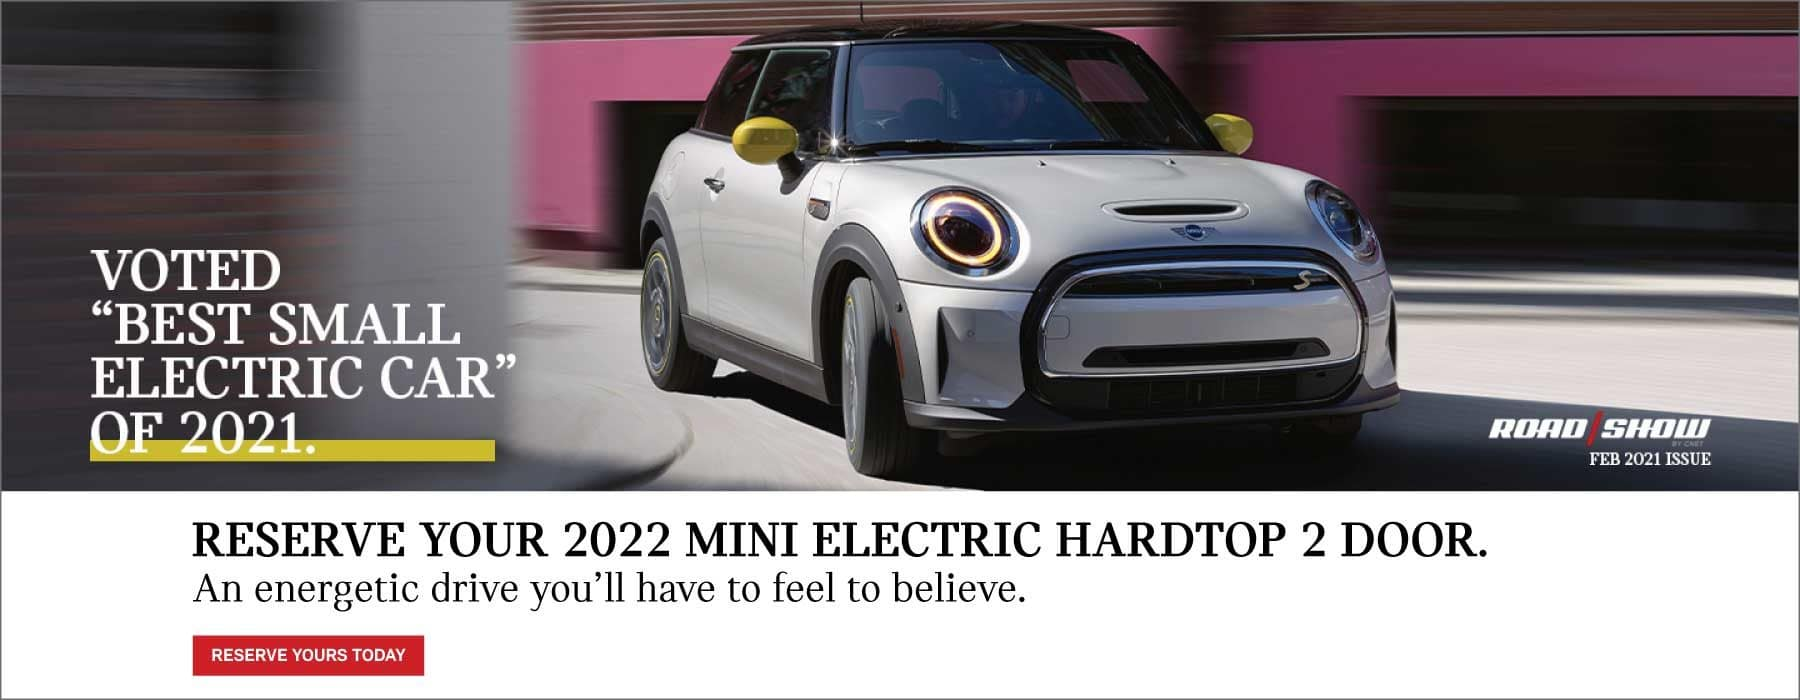 Reserve your 2022 MINI Electric Hardtop 2 Door. Voted the best small electric car of 2021 in the February 2021 issue of Road Show. Click to reserve yours today. Image shows a 2022 MINI Electric Hardtop 2 Door driving down the road.